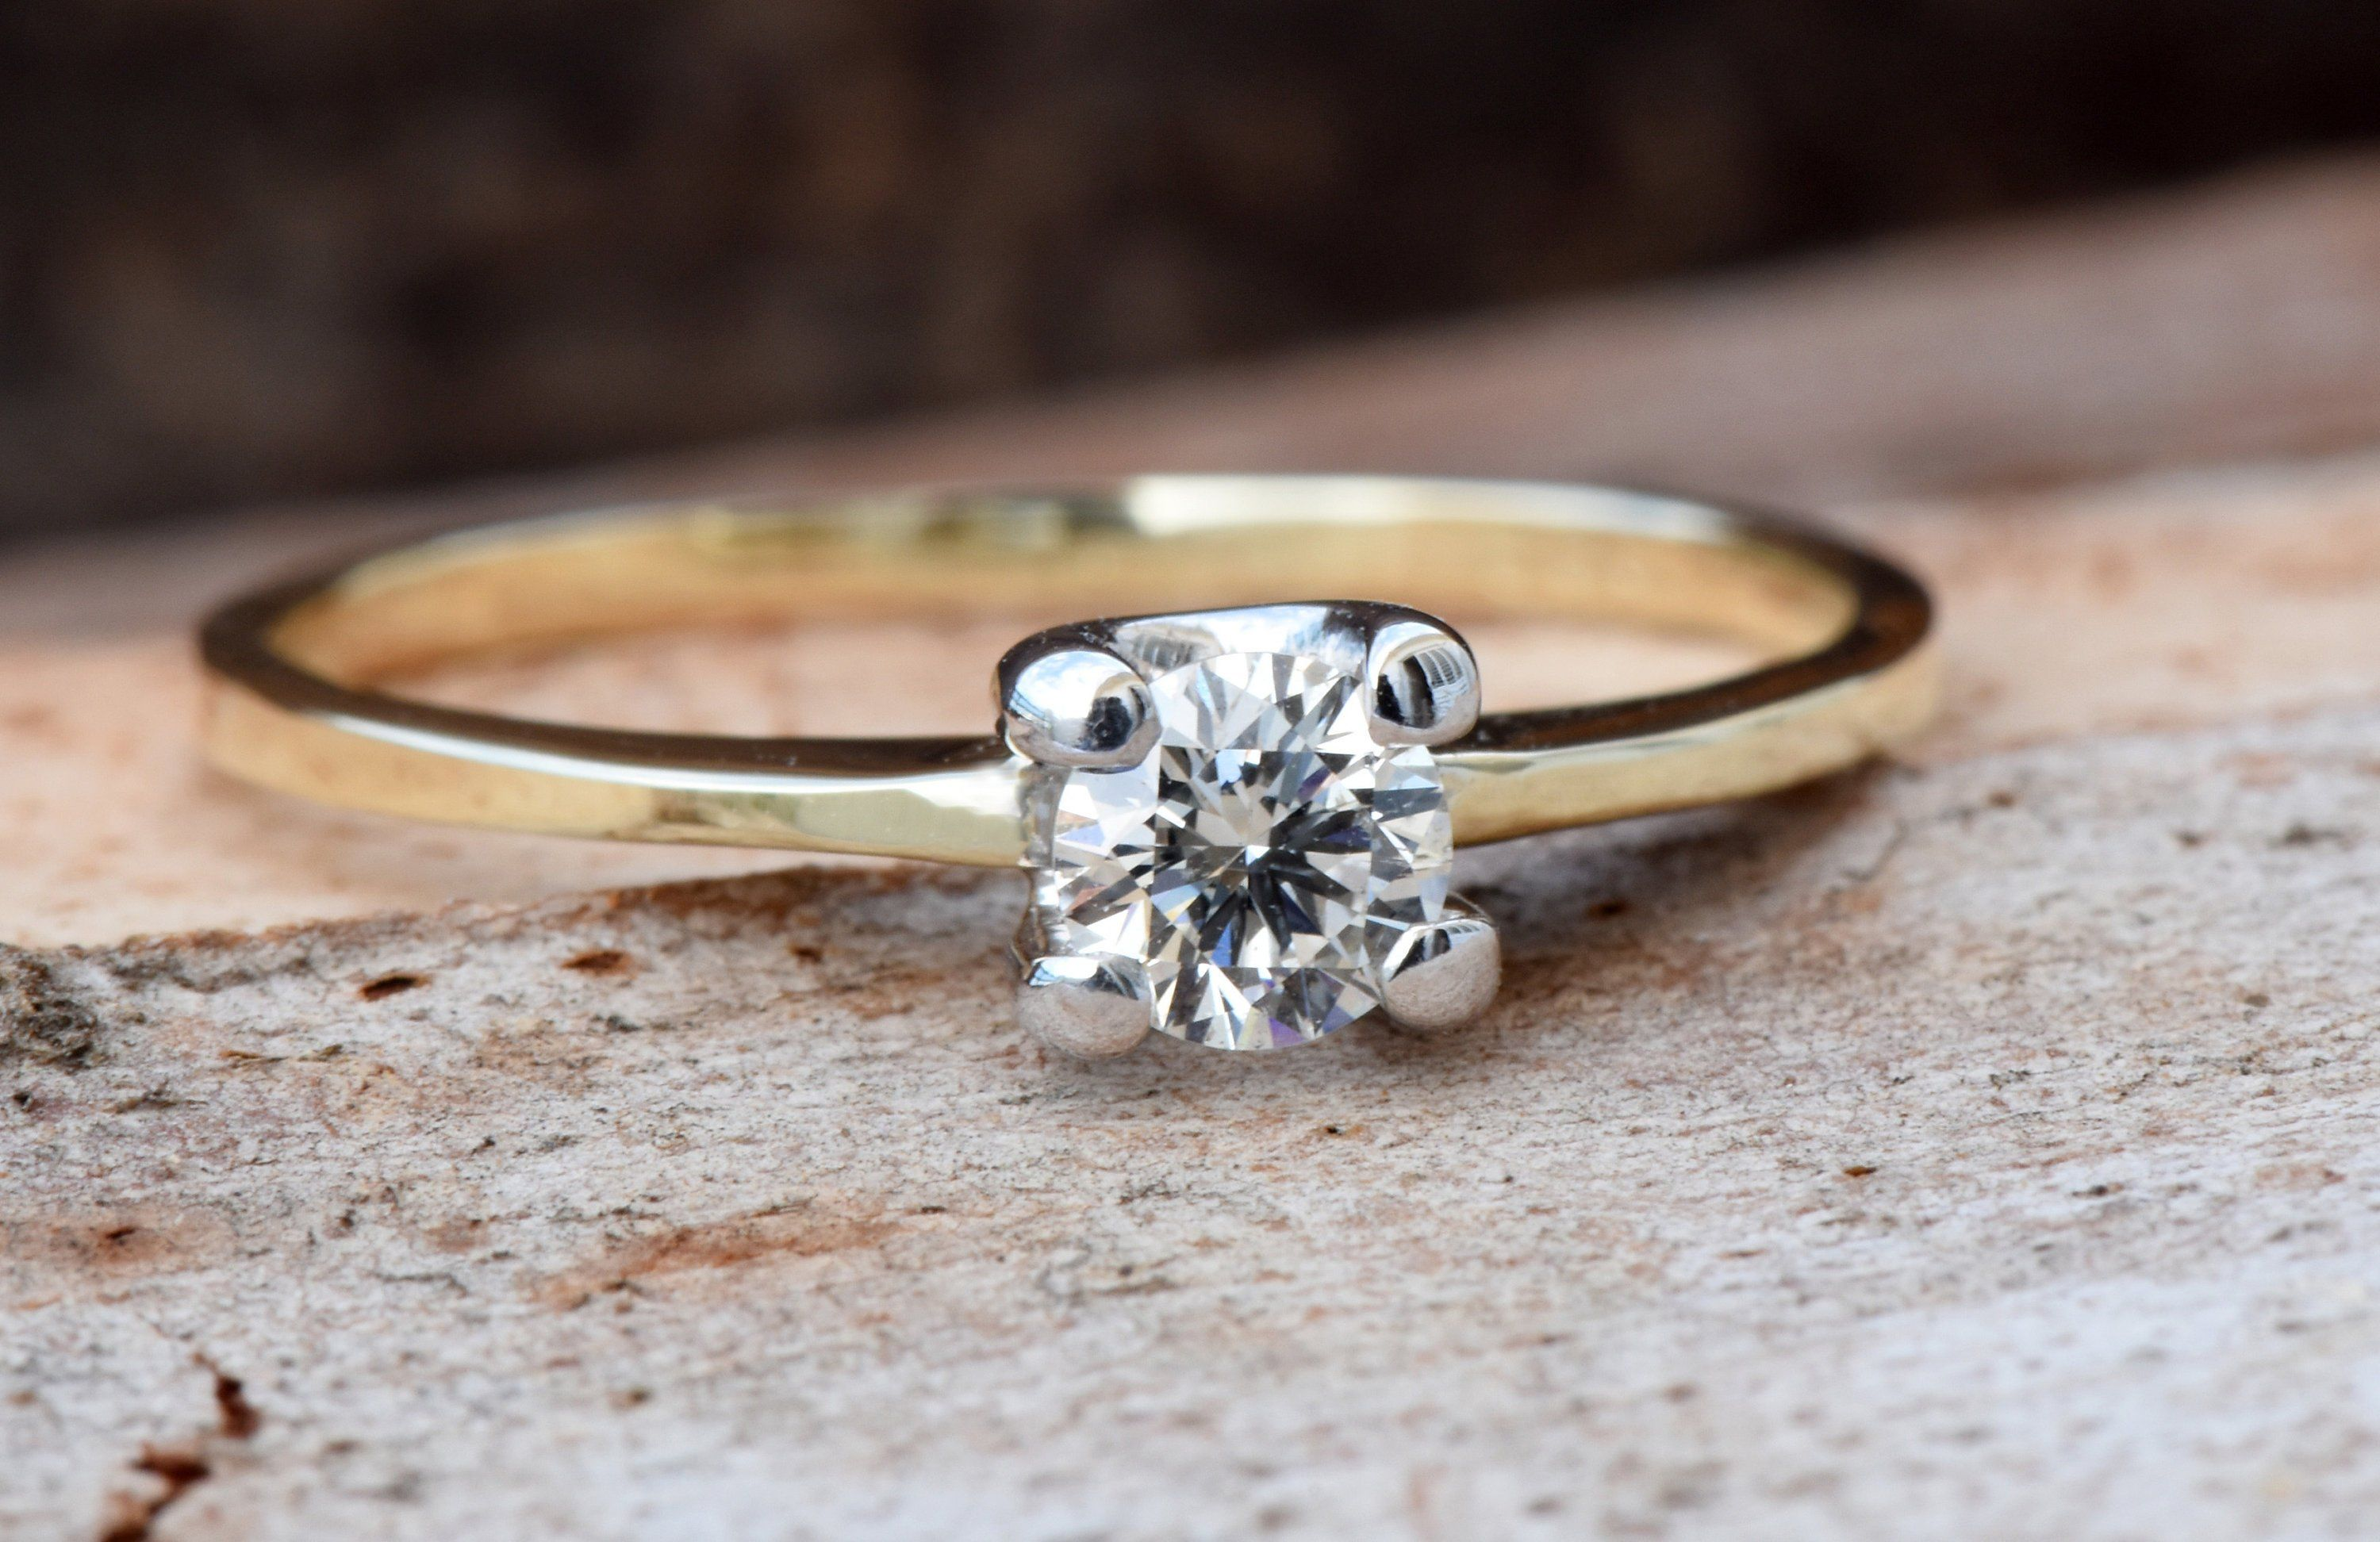 Gold Solitaire Ring-Solitaire ring-1ct Engagement Ring-Promise ring-Art deco ring-Custom Ring-Bridal ring-Solid gold ring-Branch ring